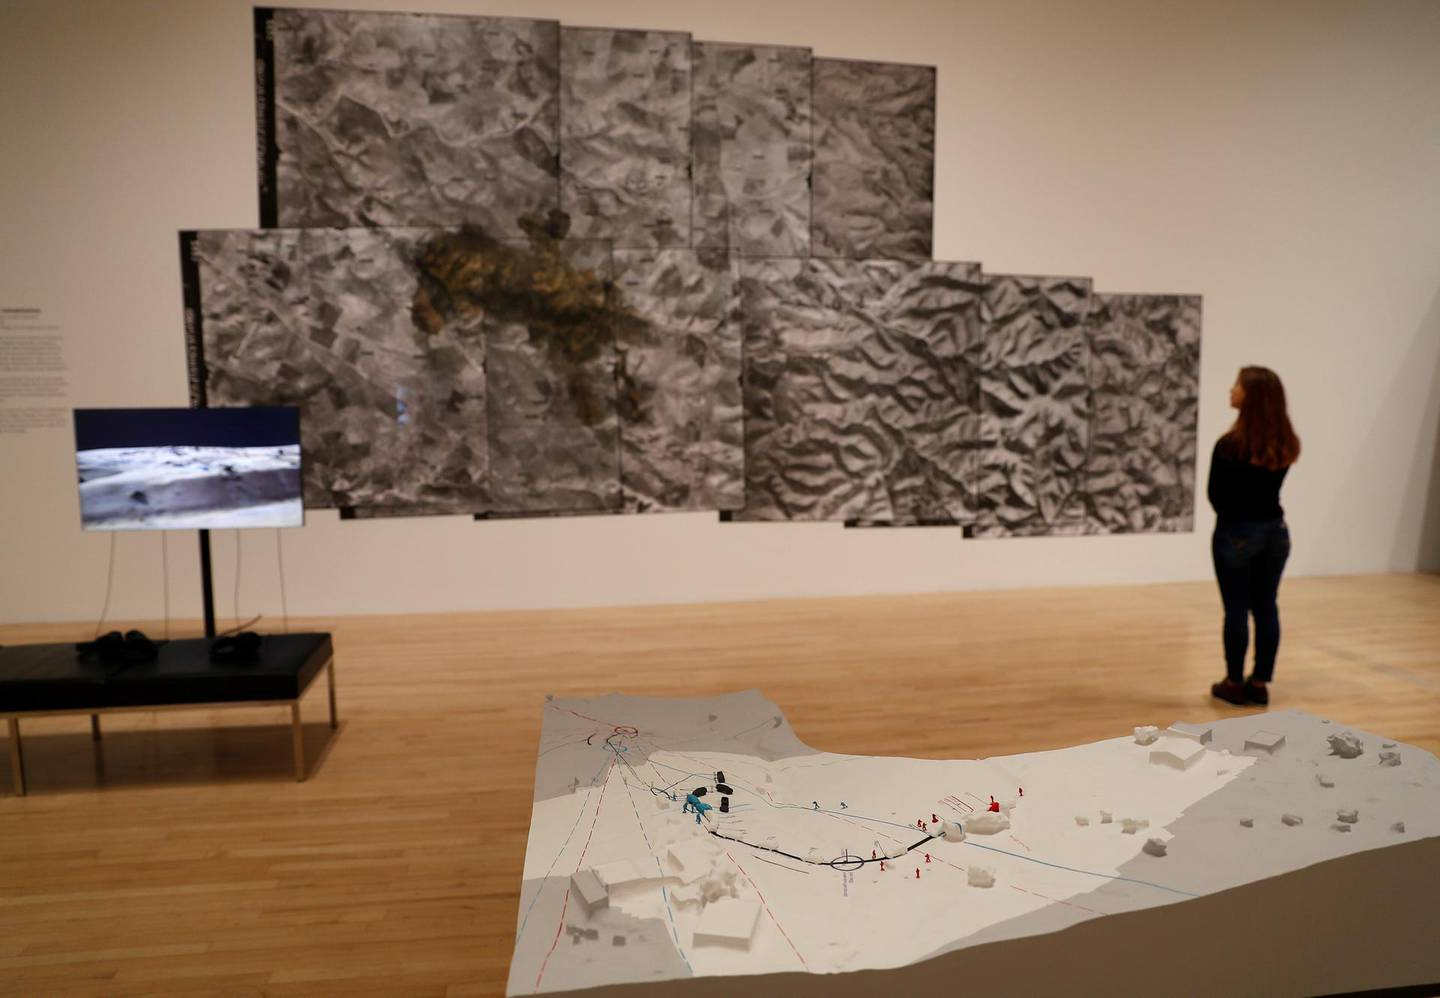 Shortlisted Turner Prize 2018 entry by Forensic Architecture, shows their investigations of Bedouin communities in southern Israel and is displayed at Tate Britain, in London, Britain, September 24, 2018. REUTERS/Peter Nicholls